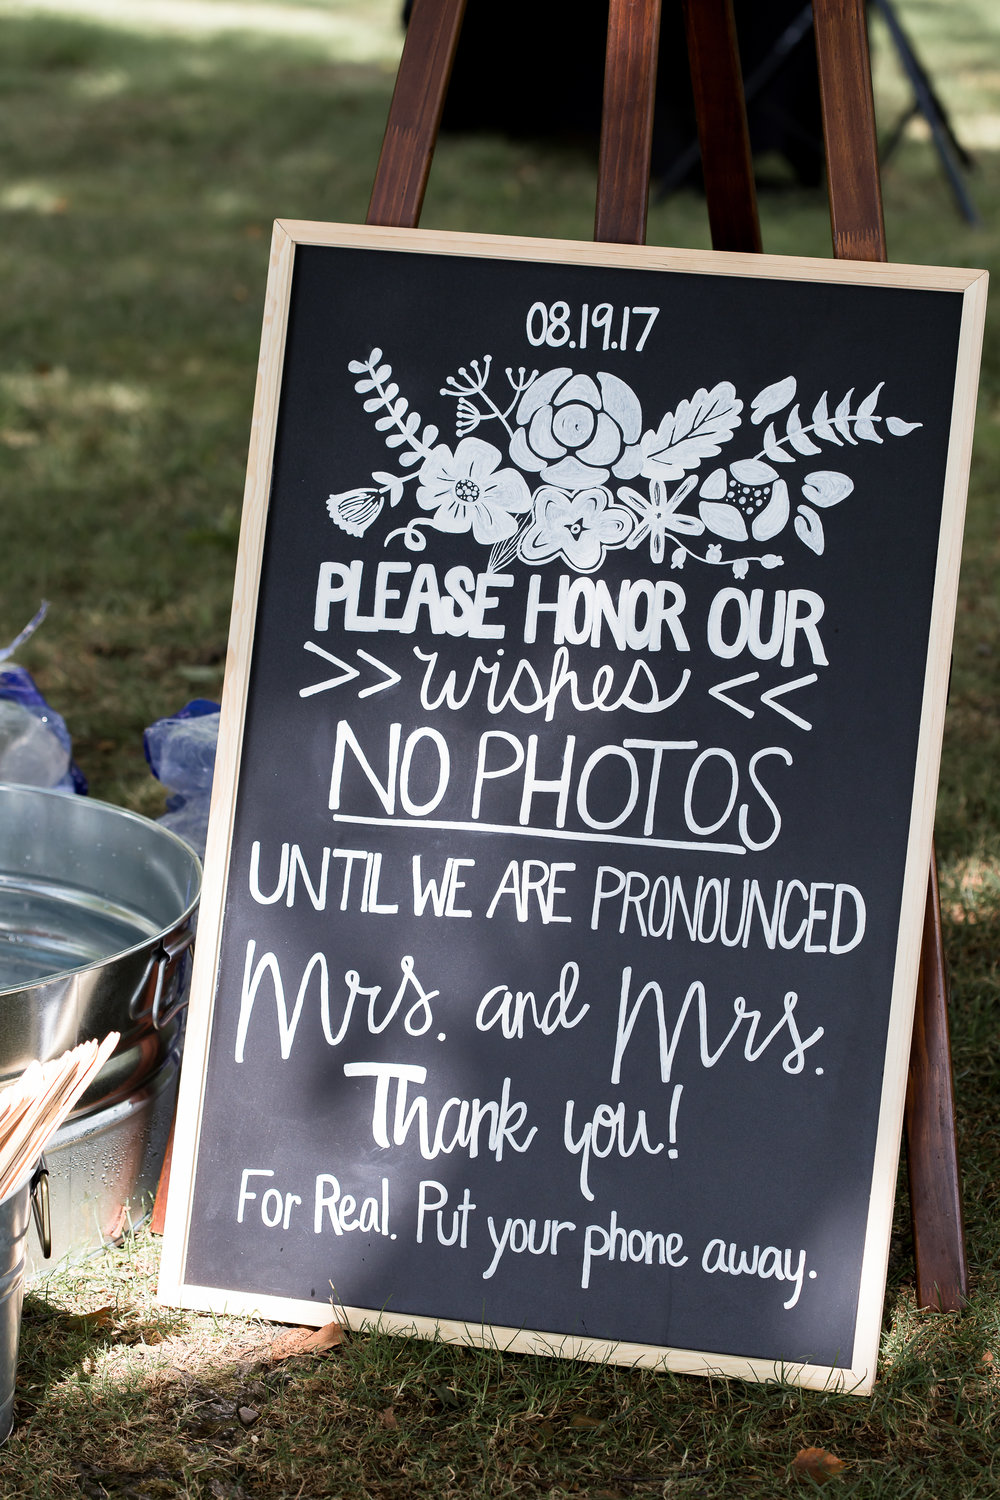 Gandjos_Tinko_BackSeatPhotography_backseatphoto45 - Copy.JPG